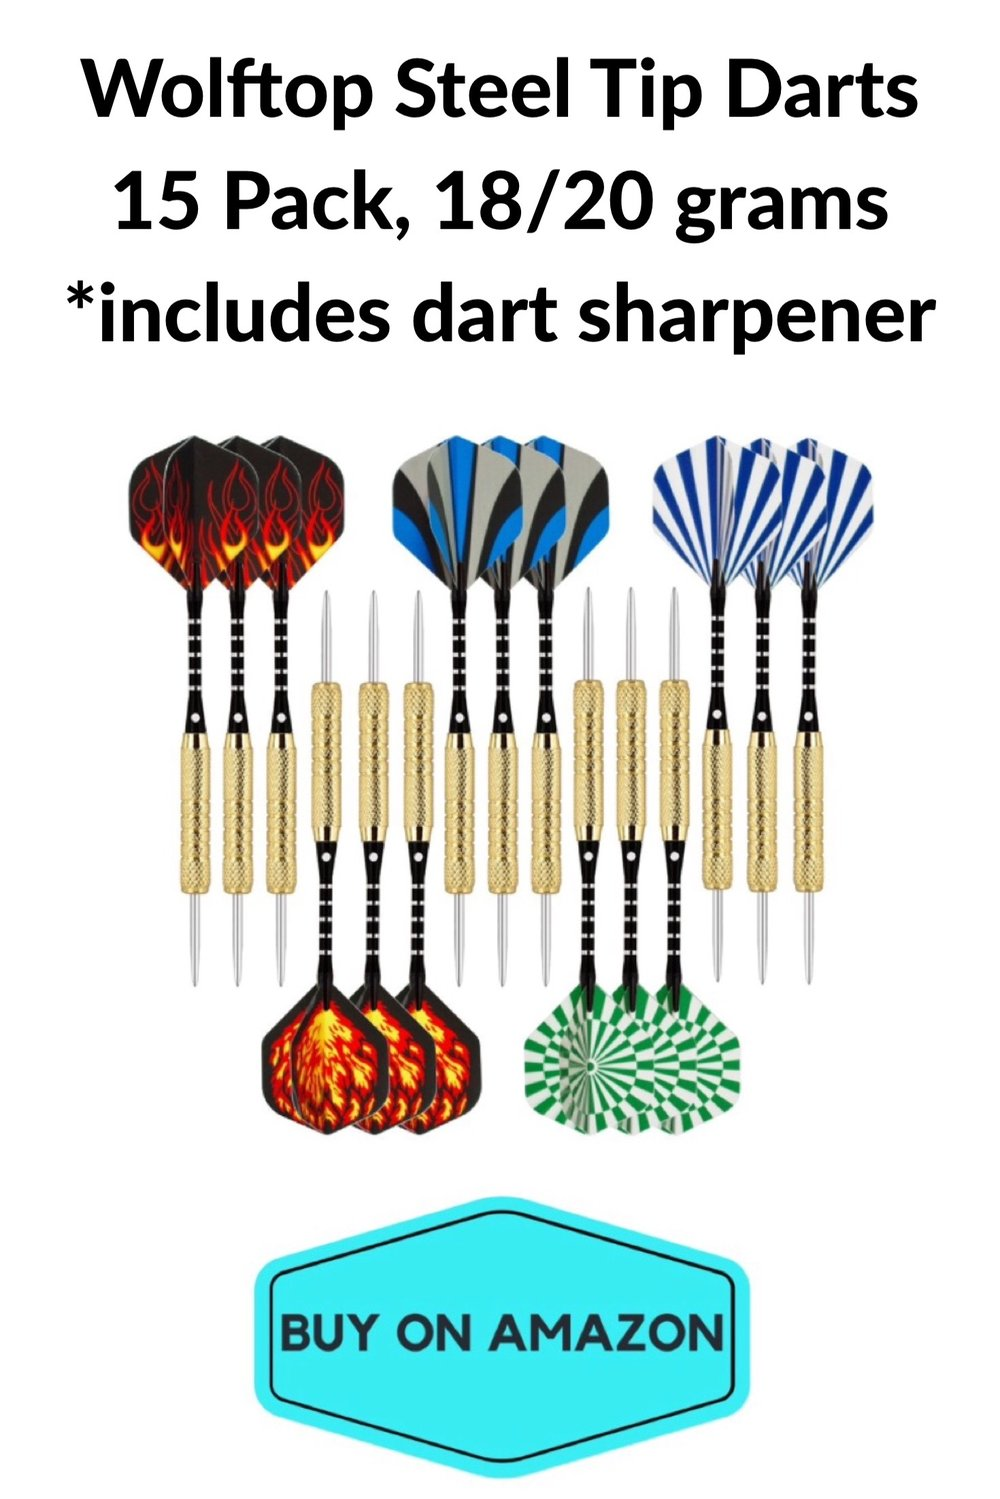 Wolftop Steel Tip Darts, 15 pack